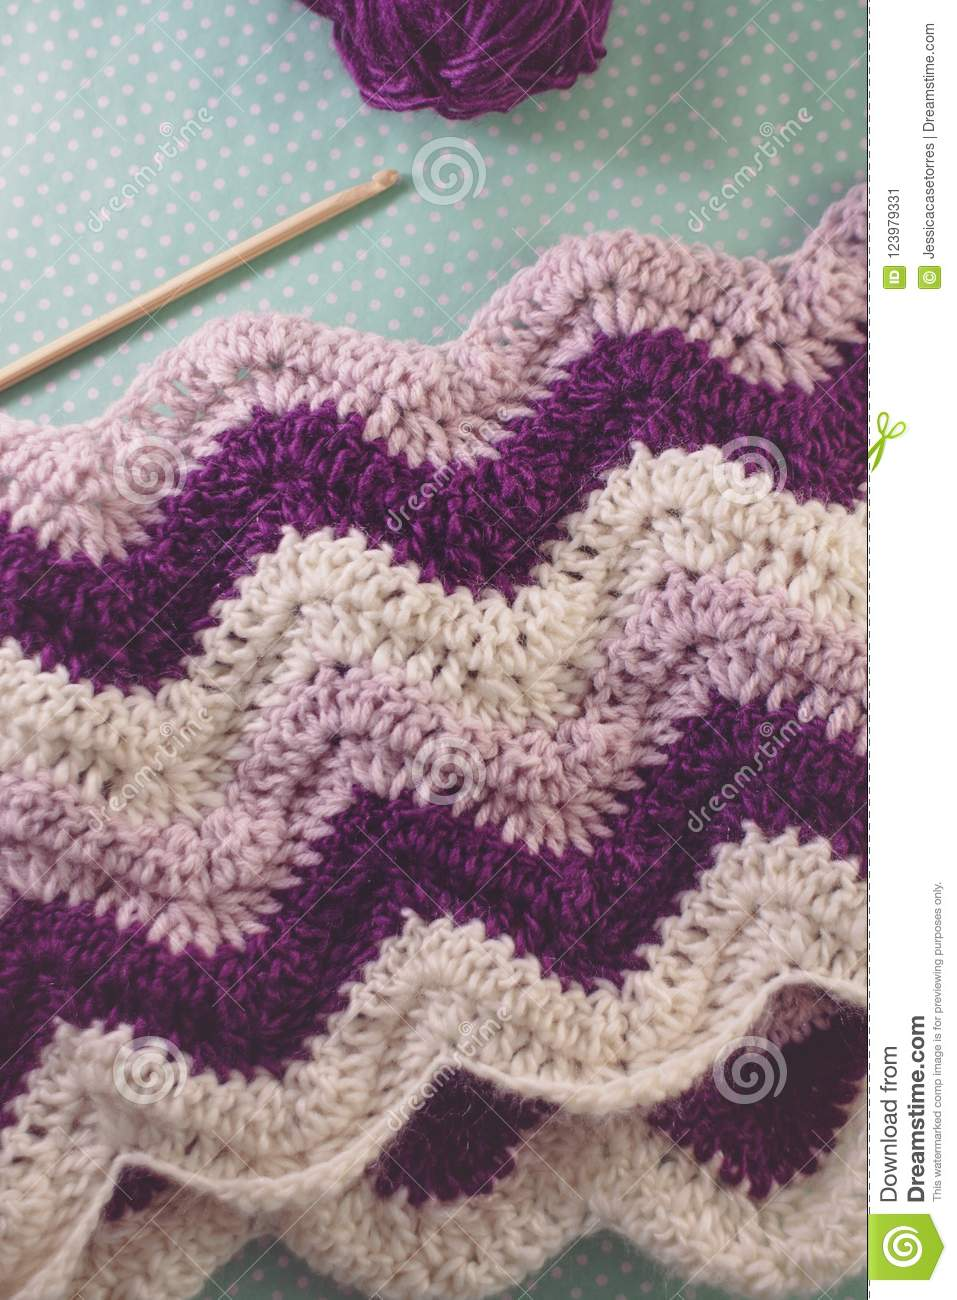 Purple And Pink Ripple Crochet Afghan In Progress Stock Image